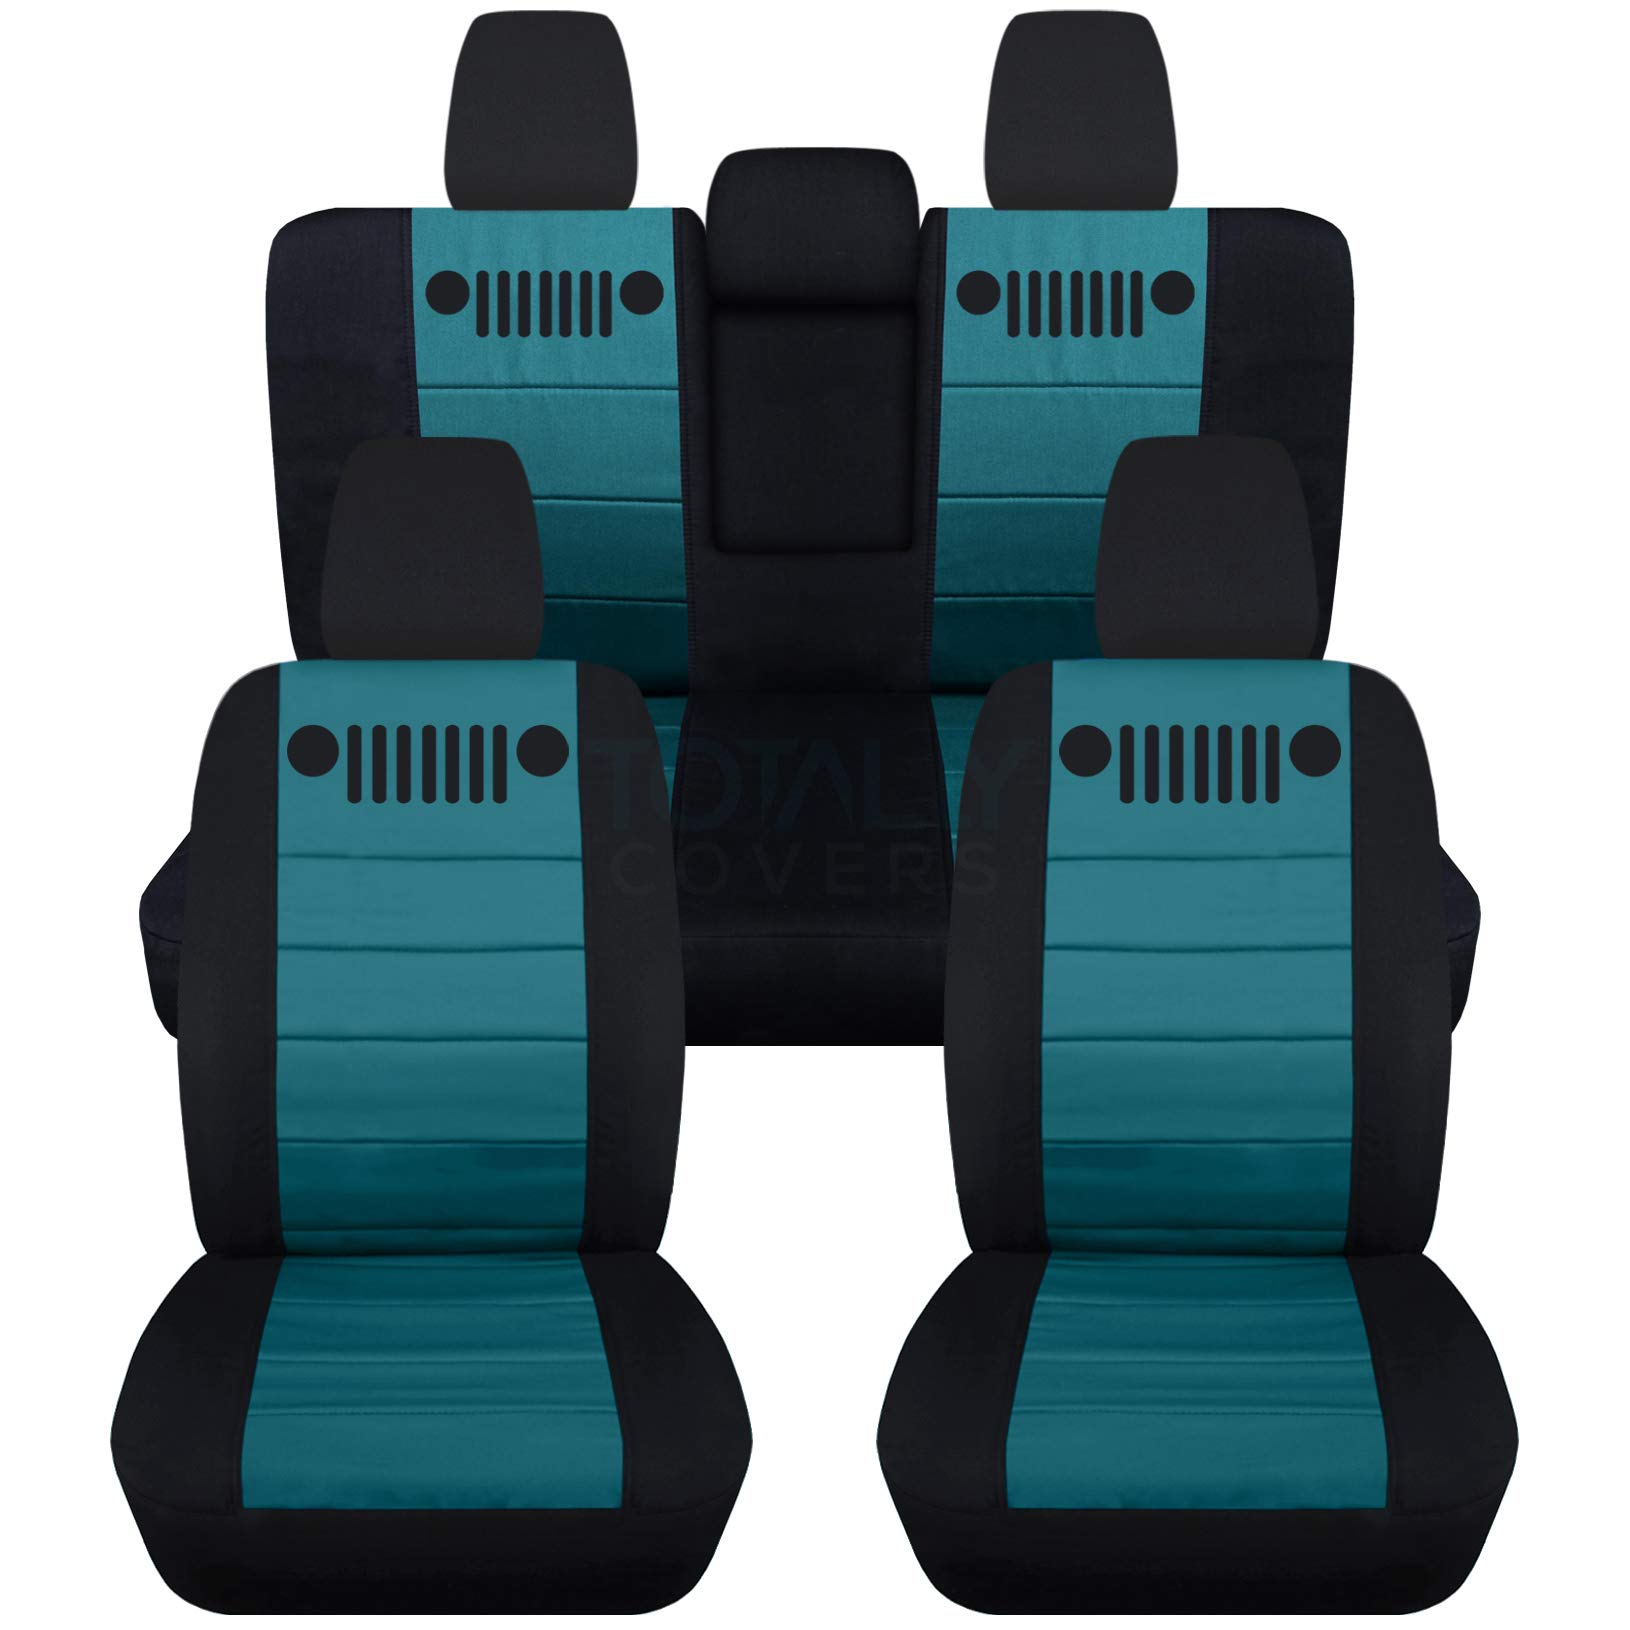 Totally Covers Fits 2018-2019 Jeep Wrangler JL Seat Covers: Black & Teal - Full Set: Front & Rear (23 Colors) 2-Door/4-Door Solid/Split Bench Back w/wo Armrest/Headrest by Totally Covers (Image #1)